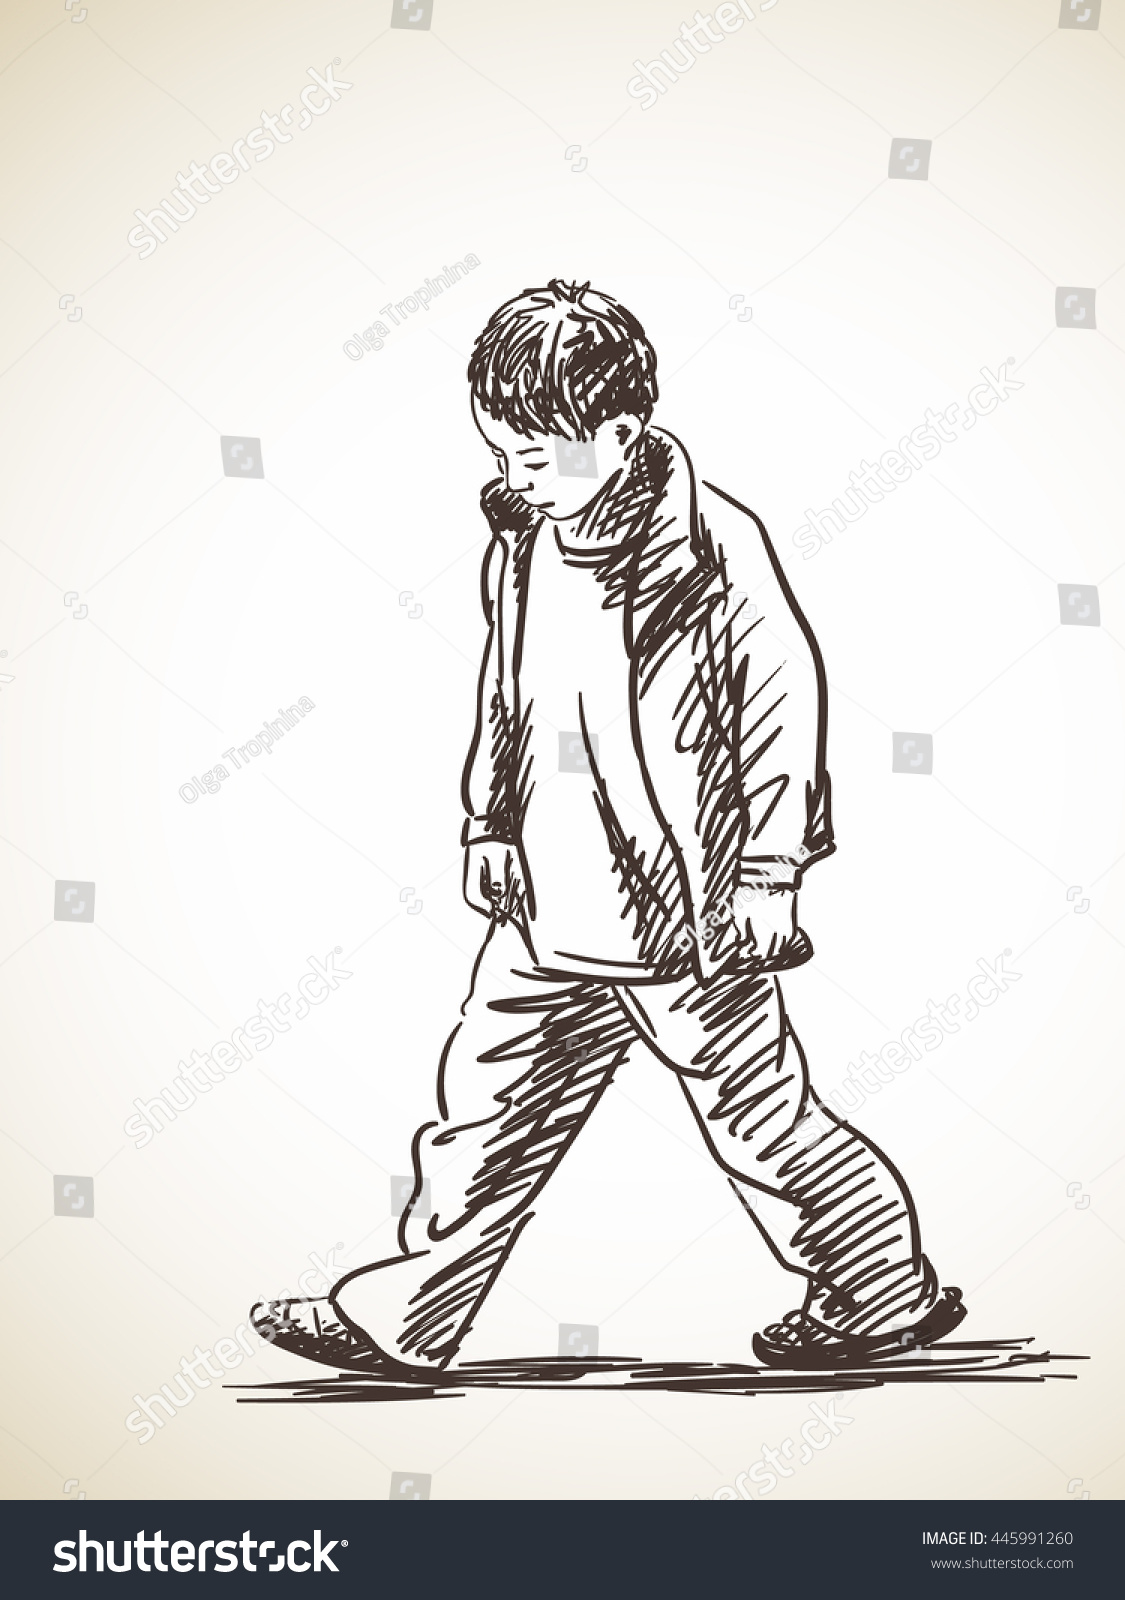 Sketch of sad boy walking hand drawn illustration